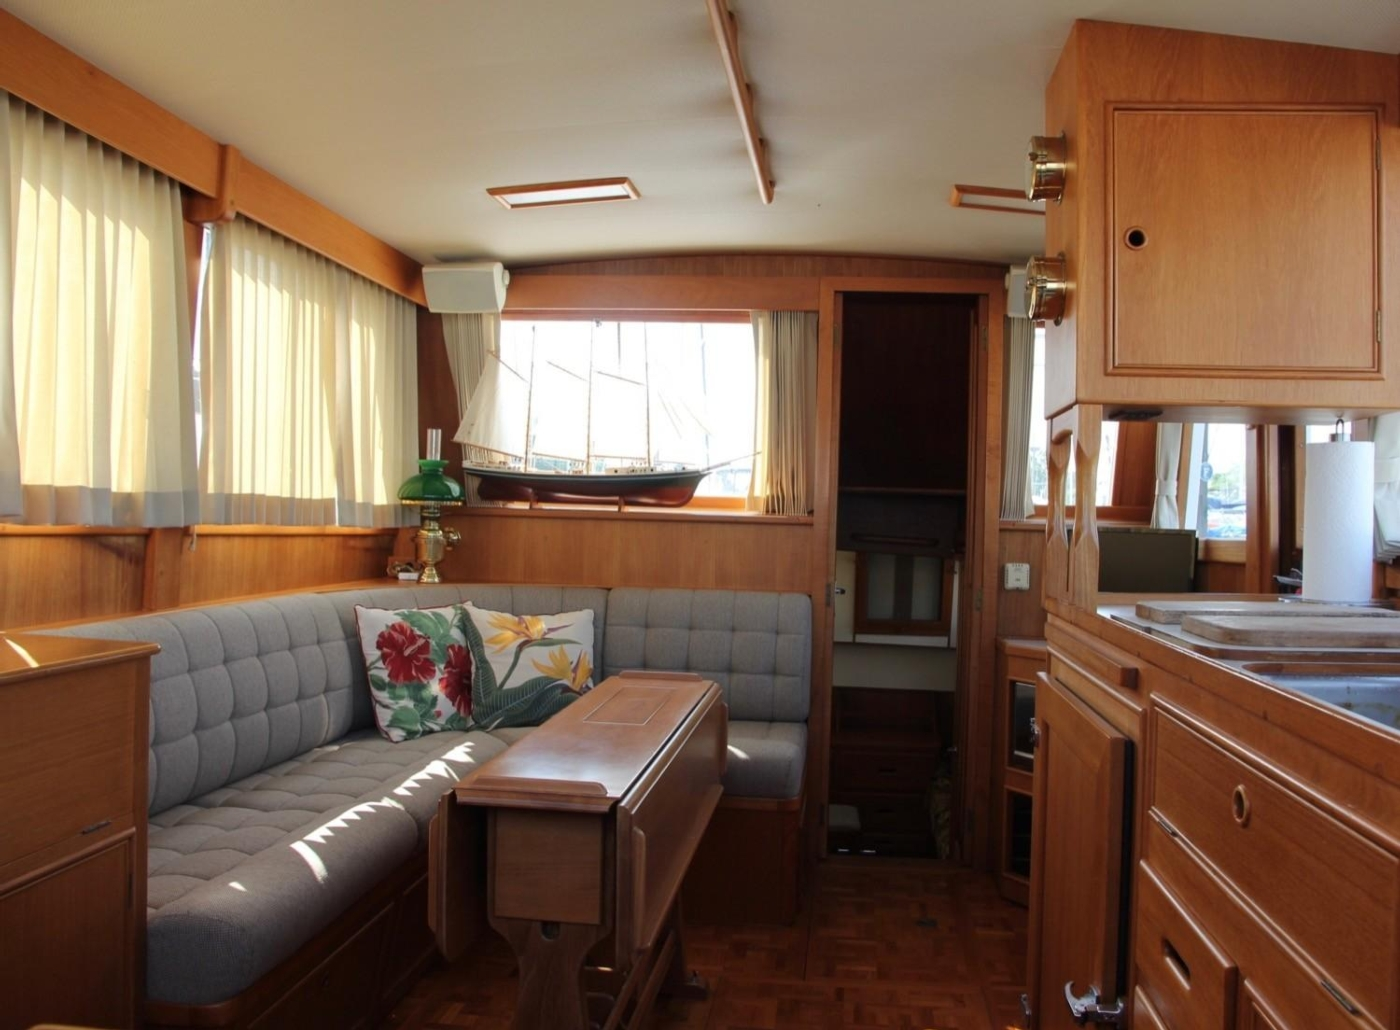 1995 Grand Banks Classic, Salon Looking Aft